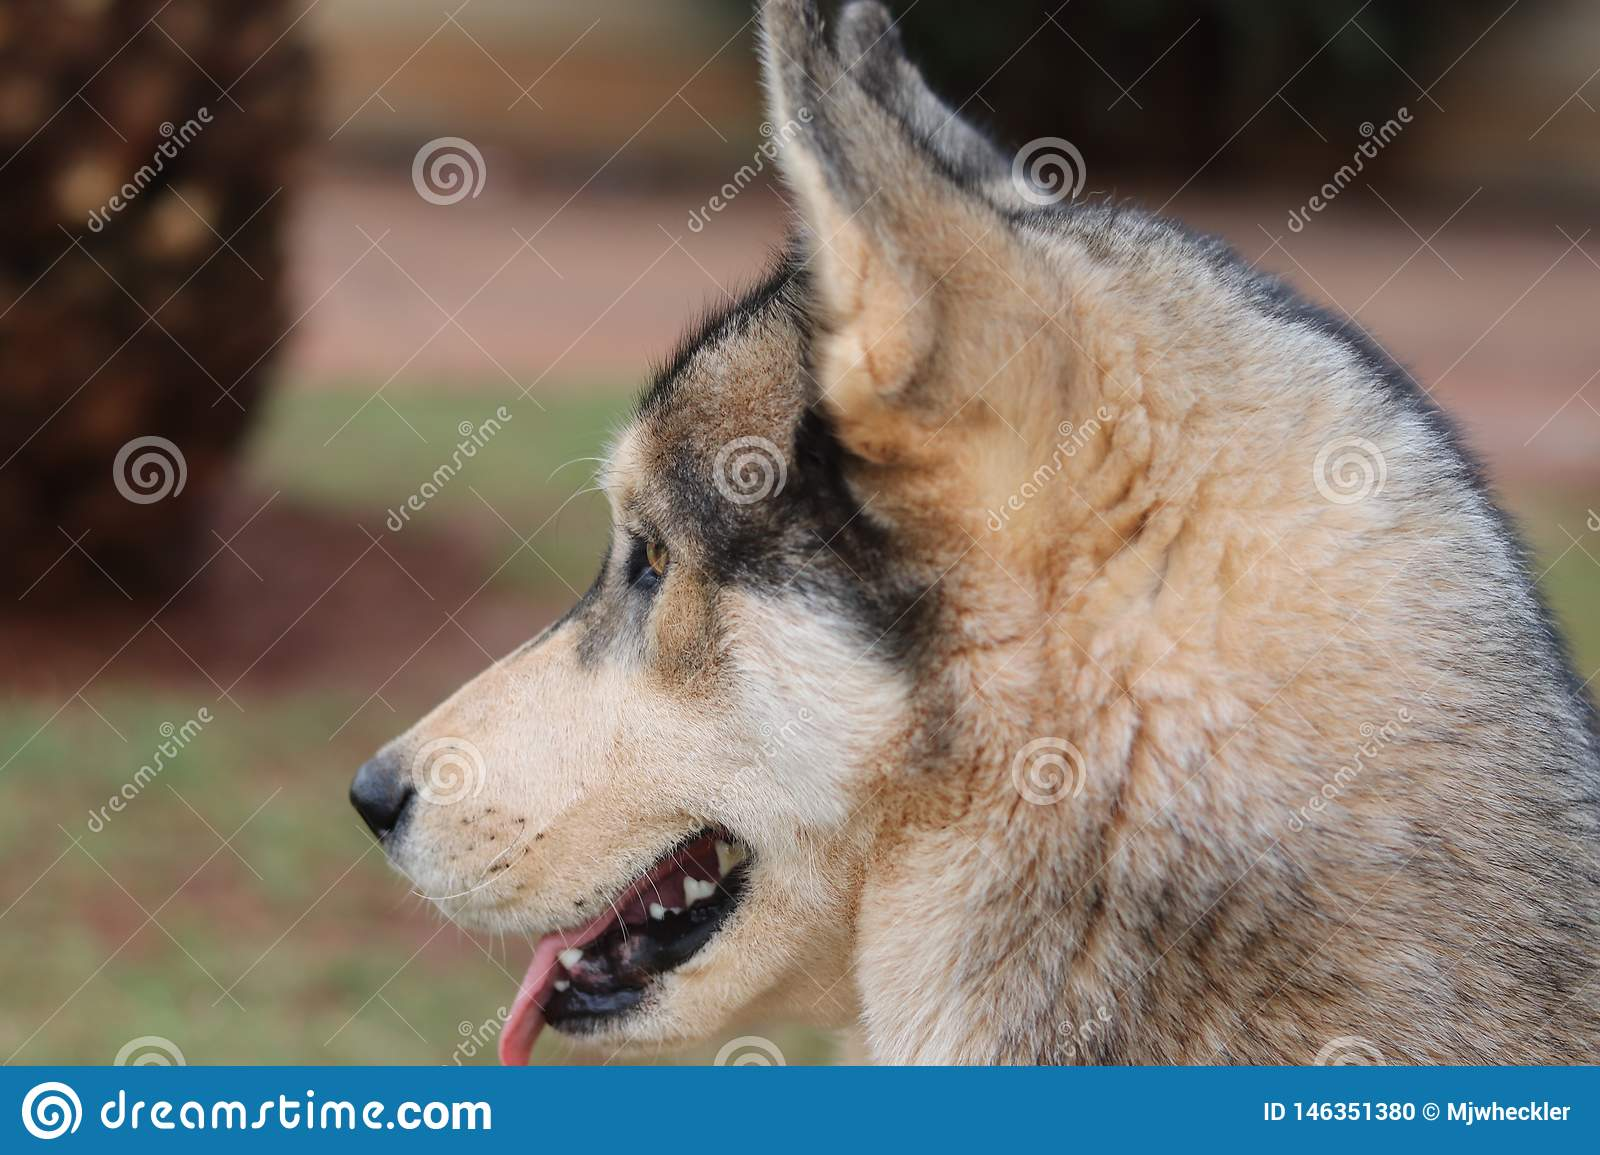 Husky Dog From The Side